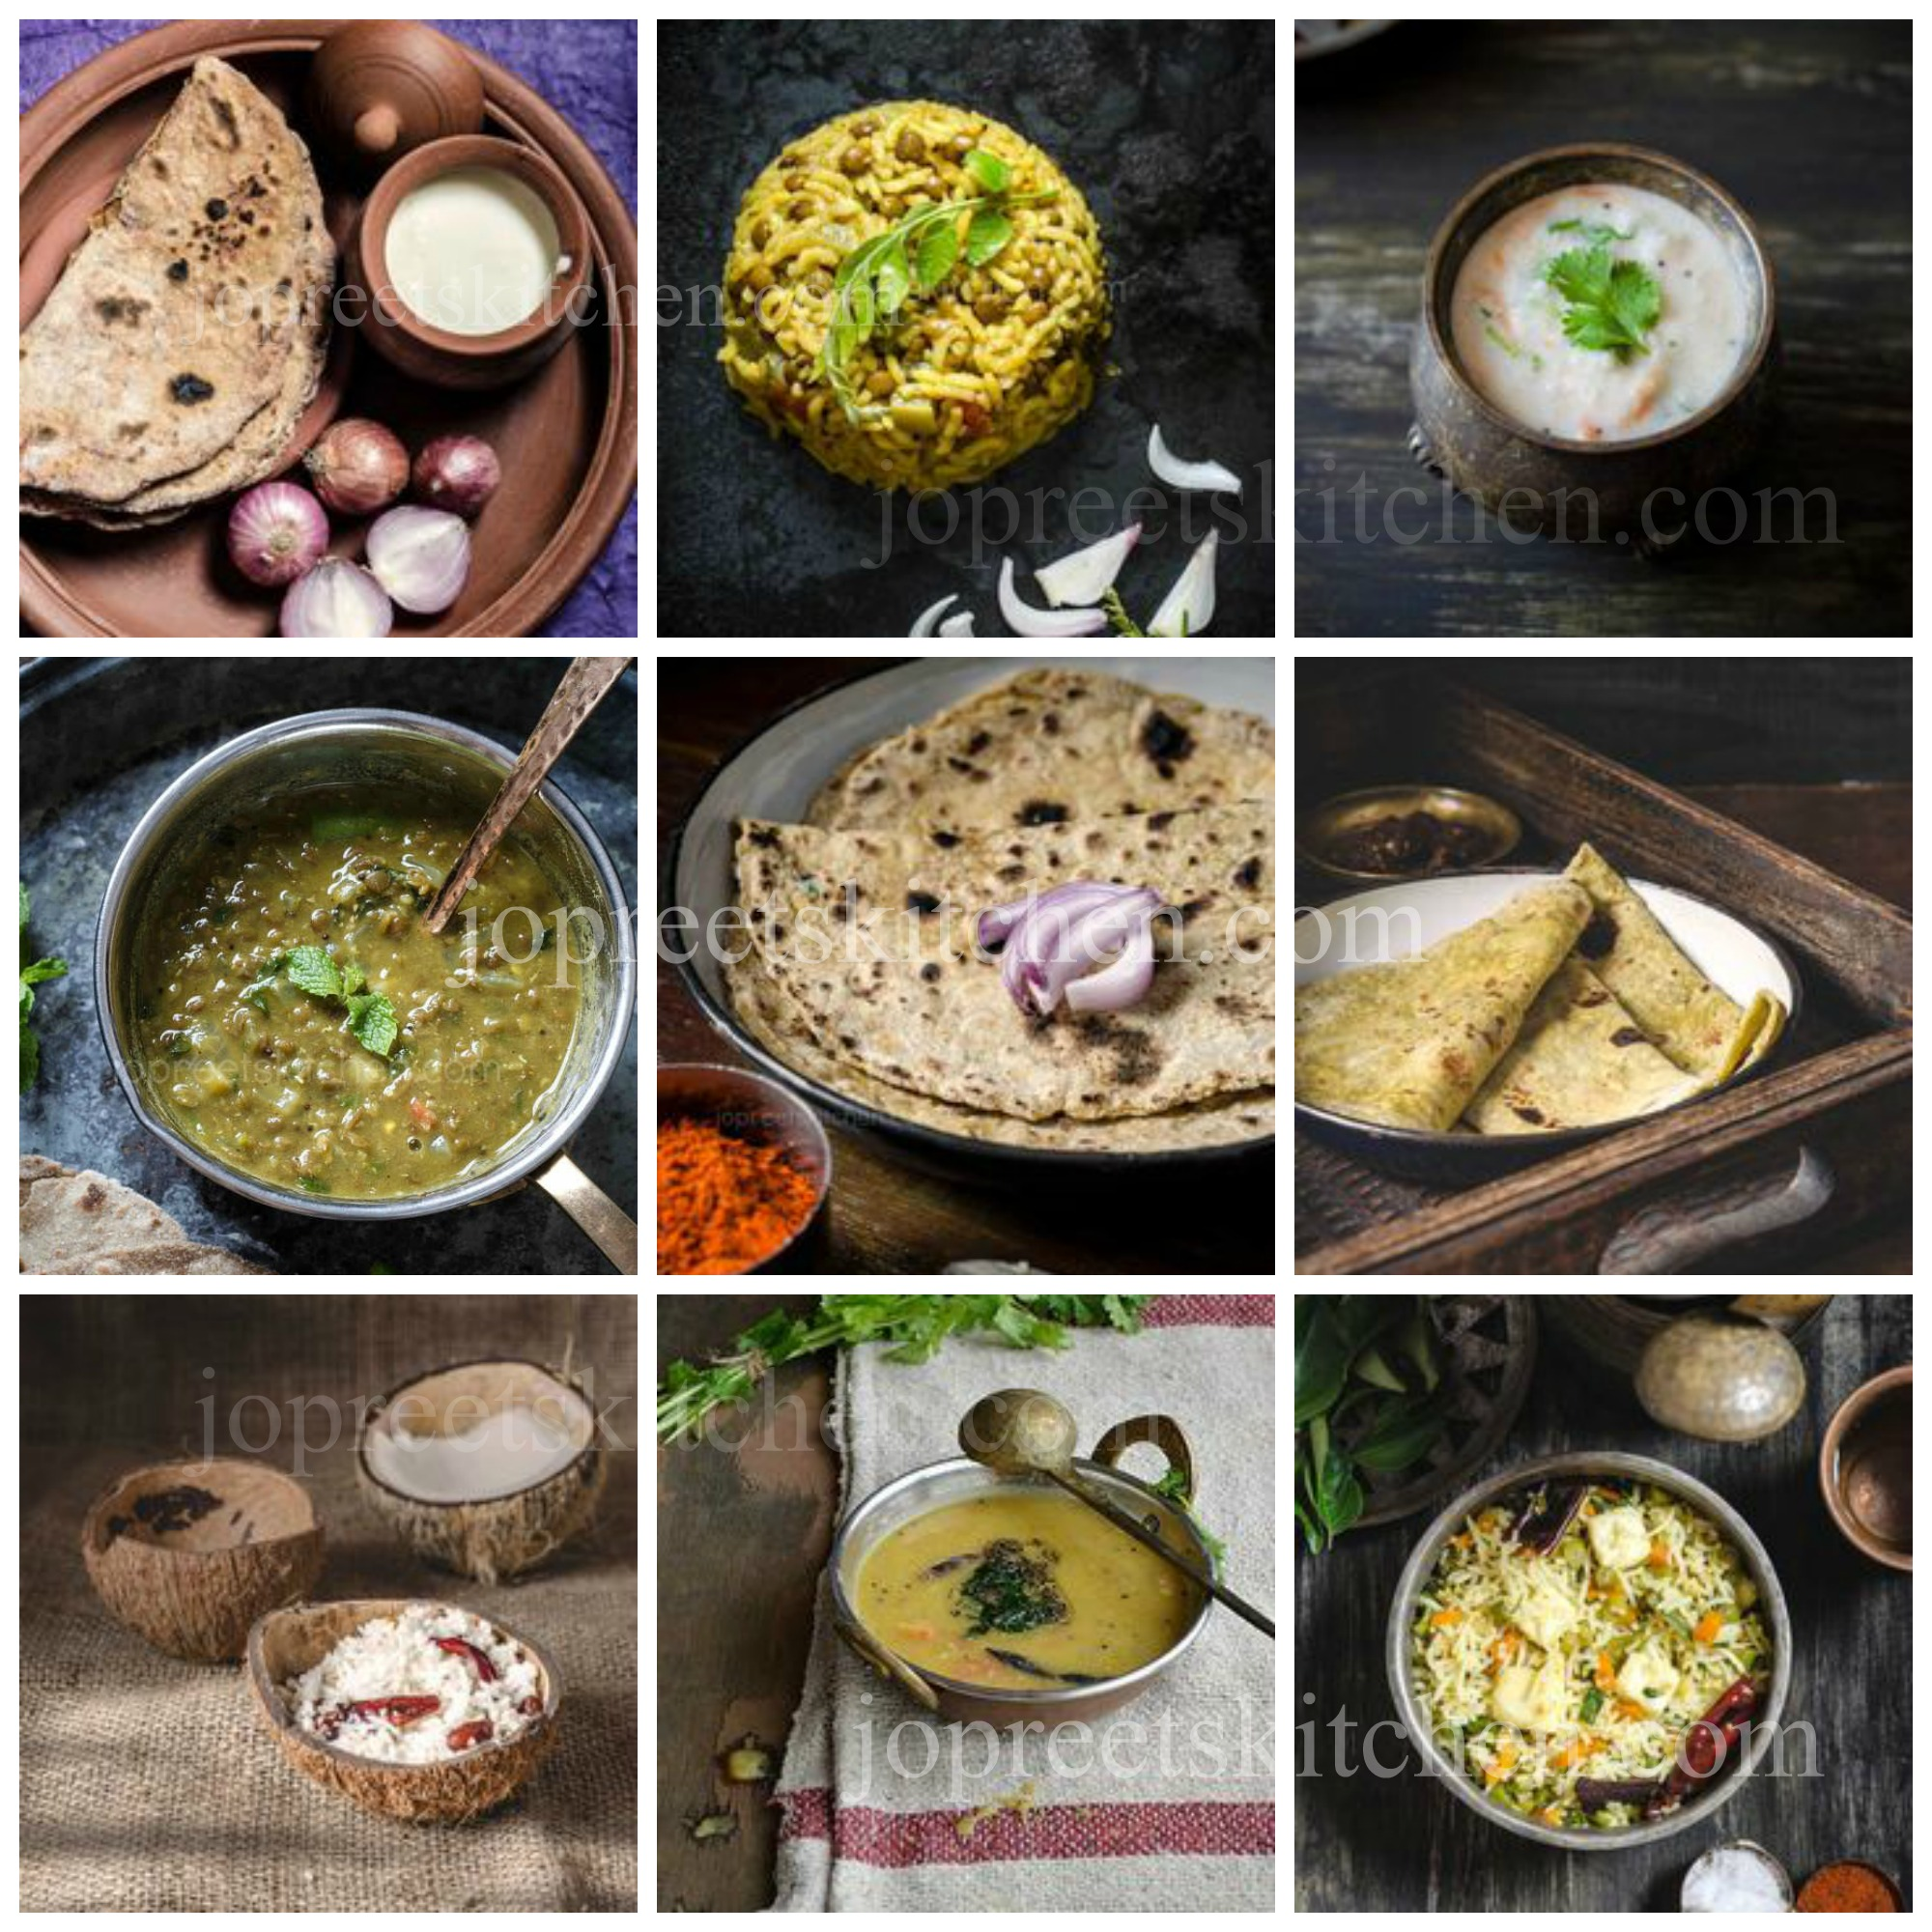 Easy healthy indian lunch box recipes jopreetskitchen healthy lunch box recipes indian lunch box recipes forumfinder Images